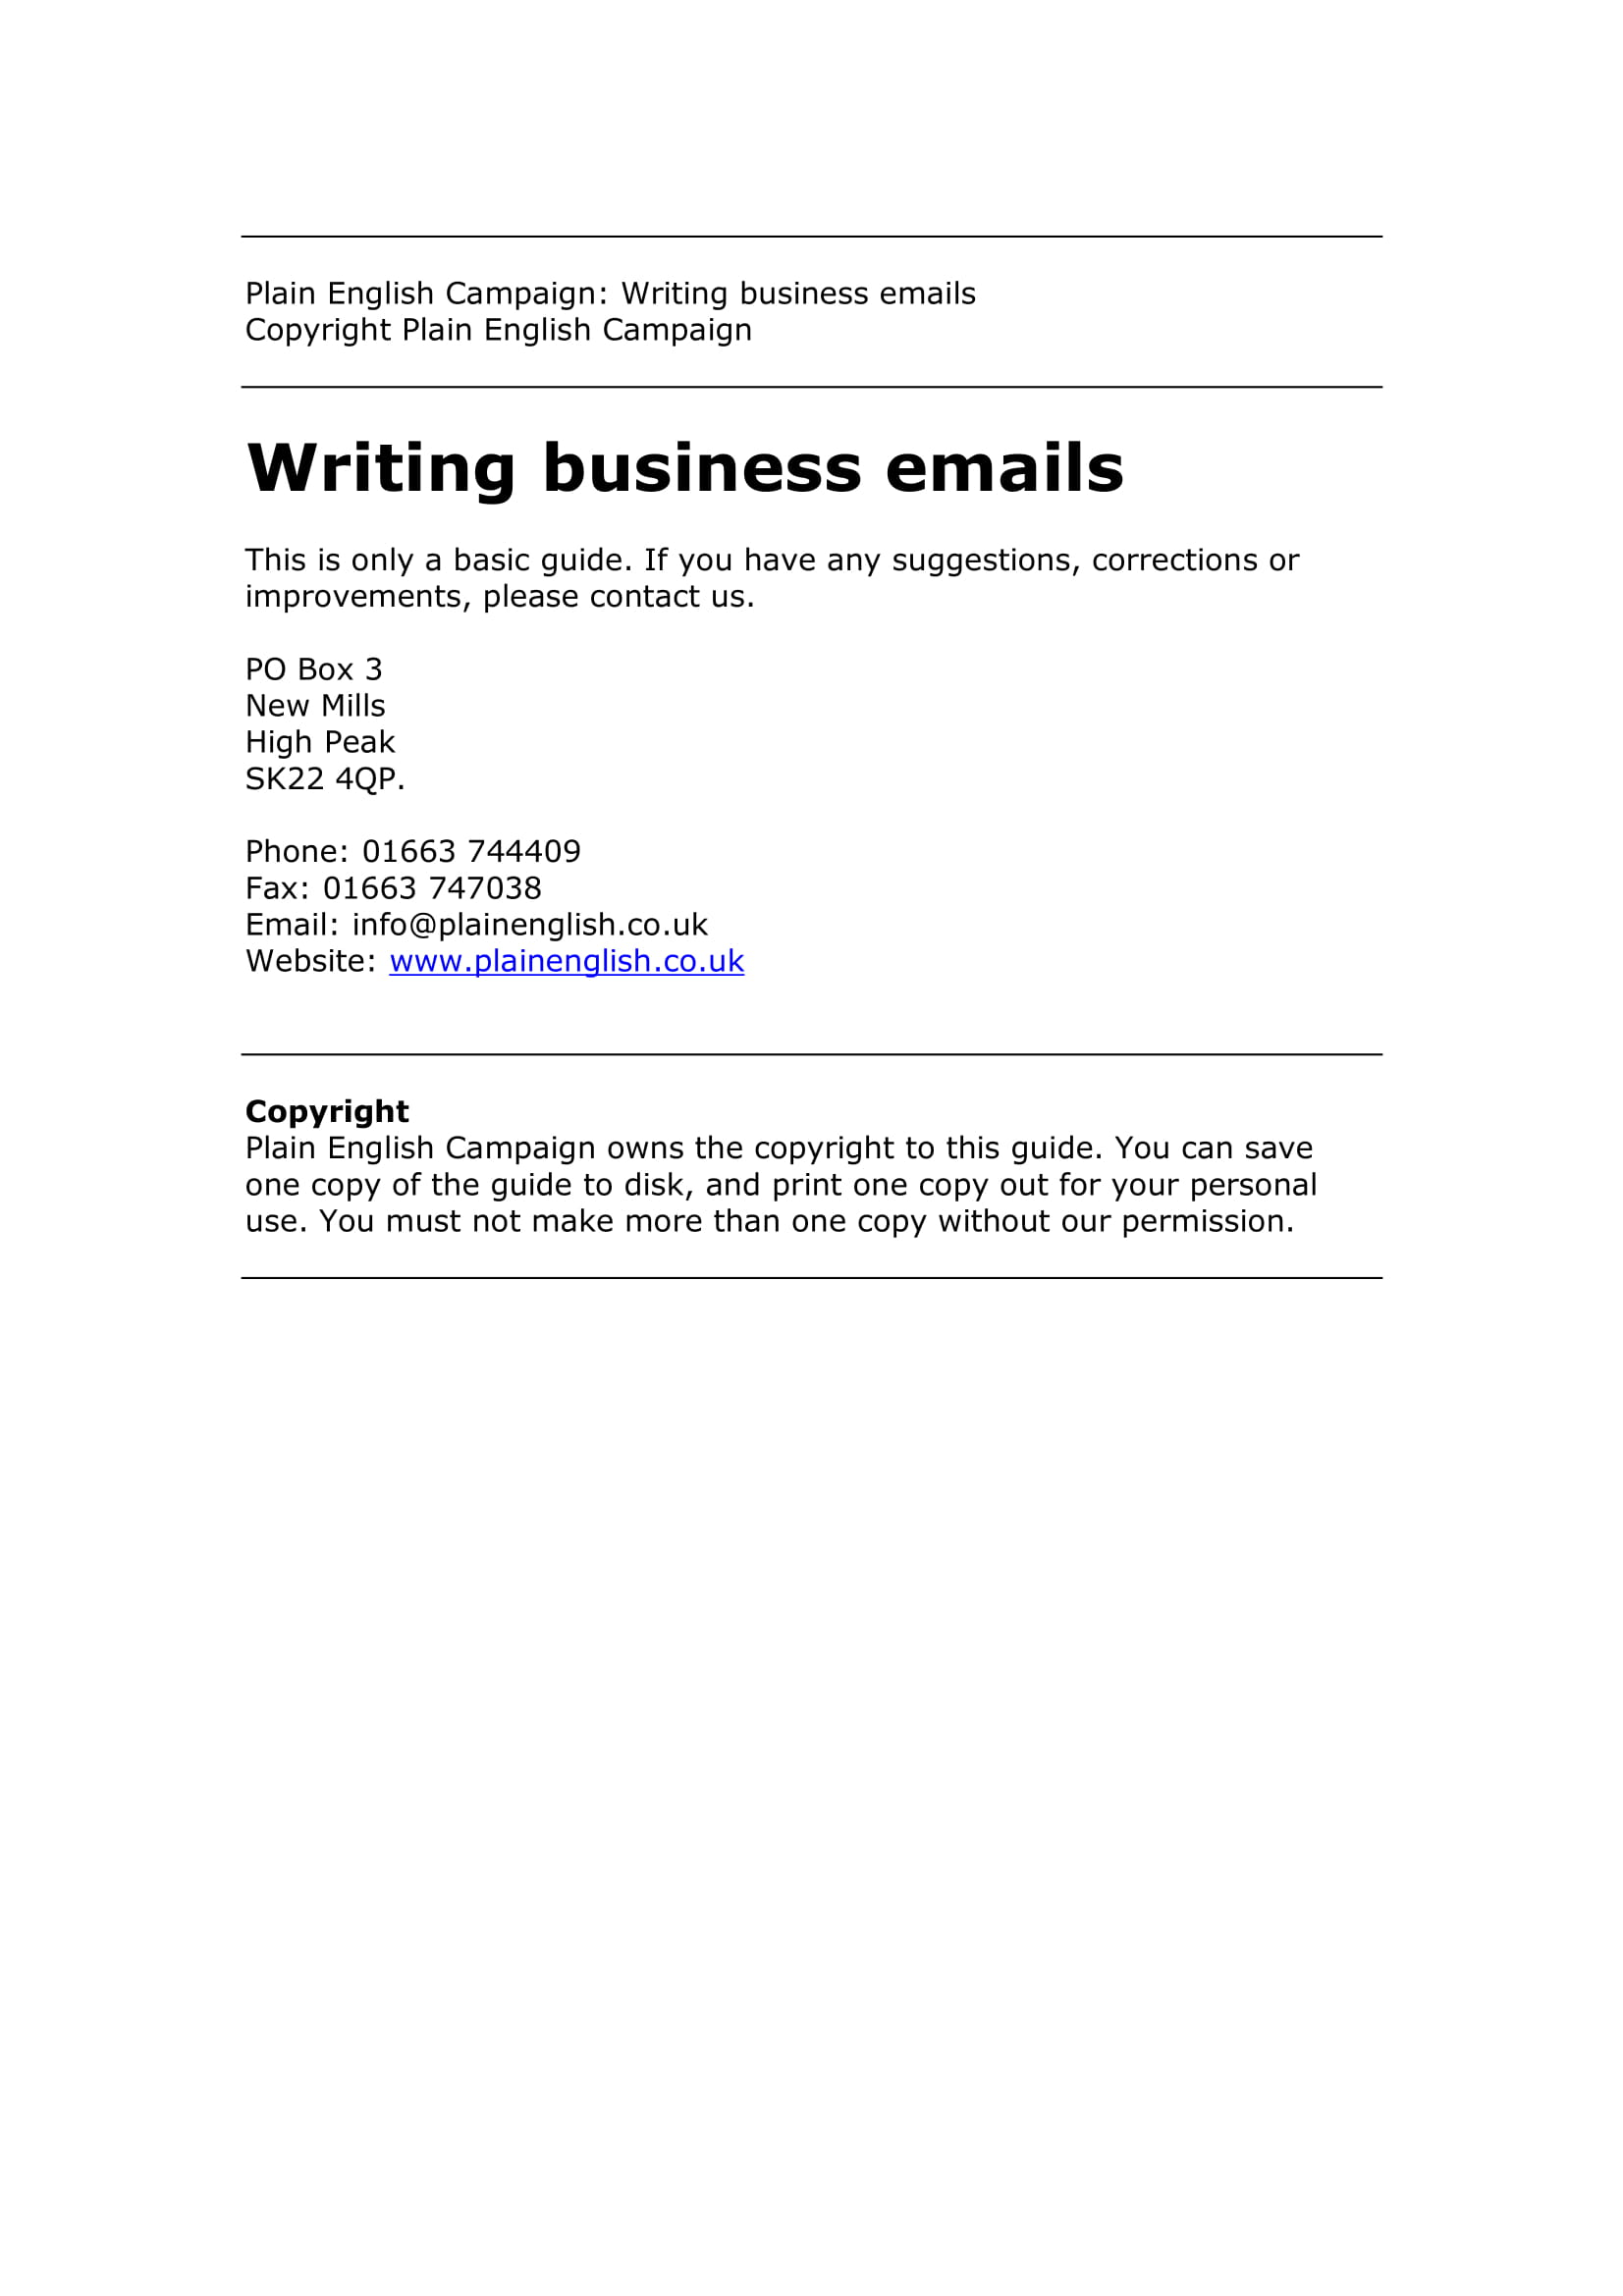 professional business email examples